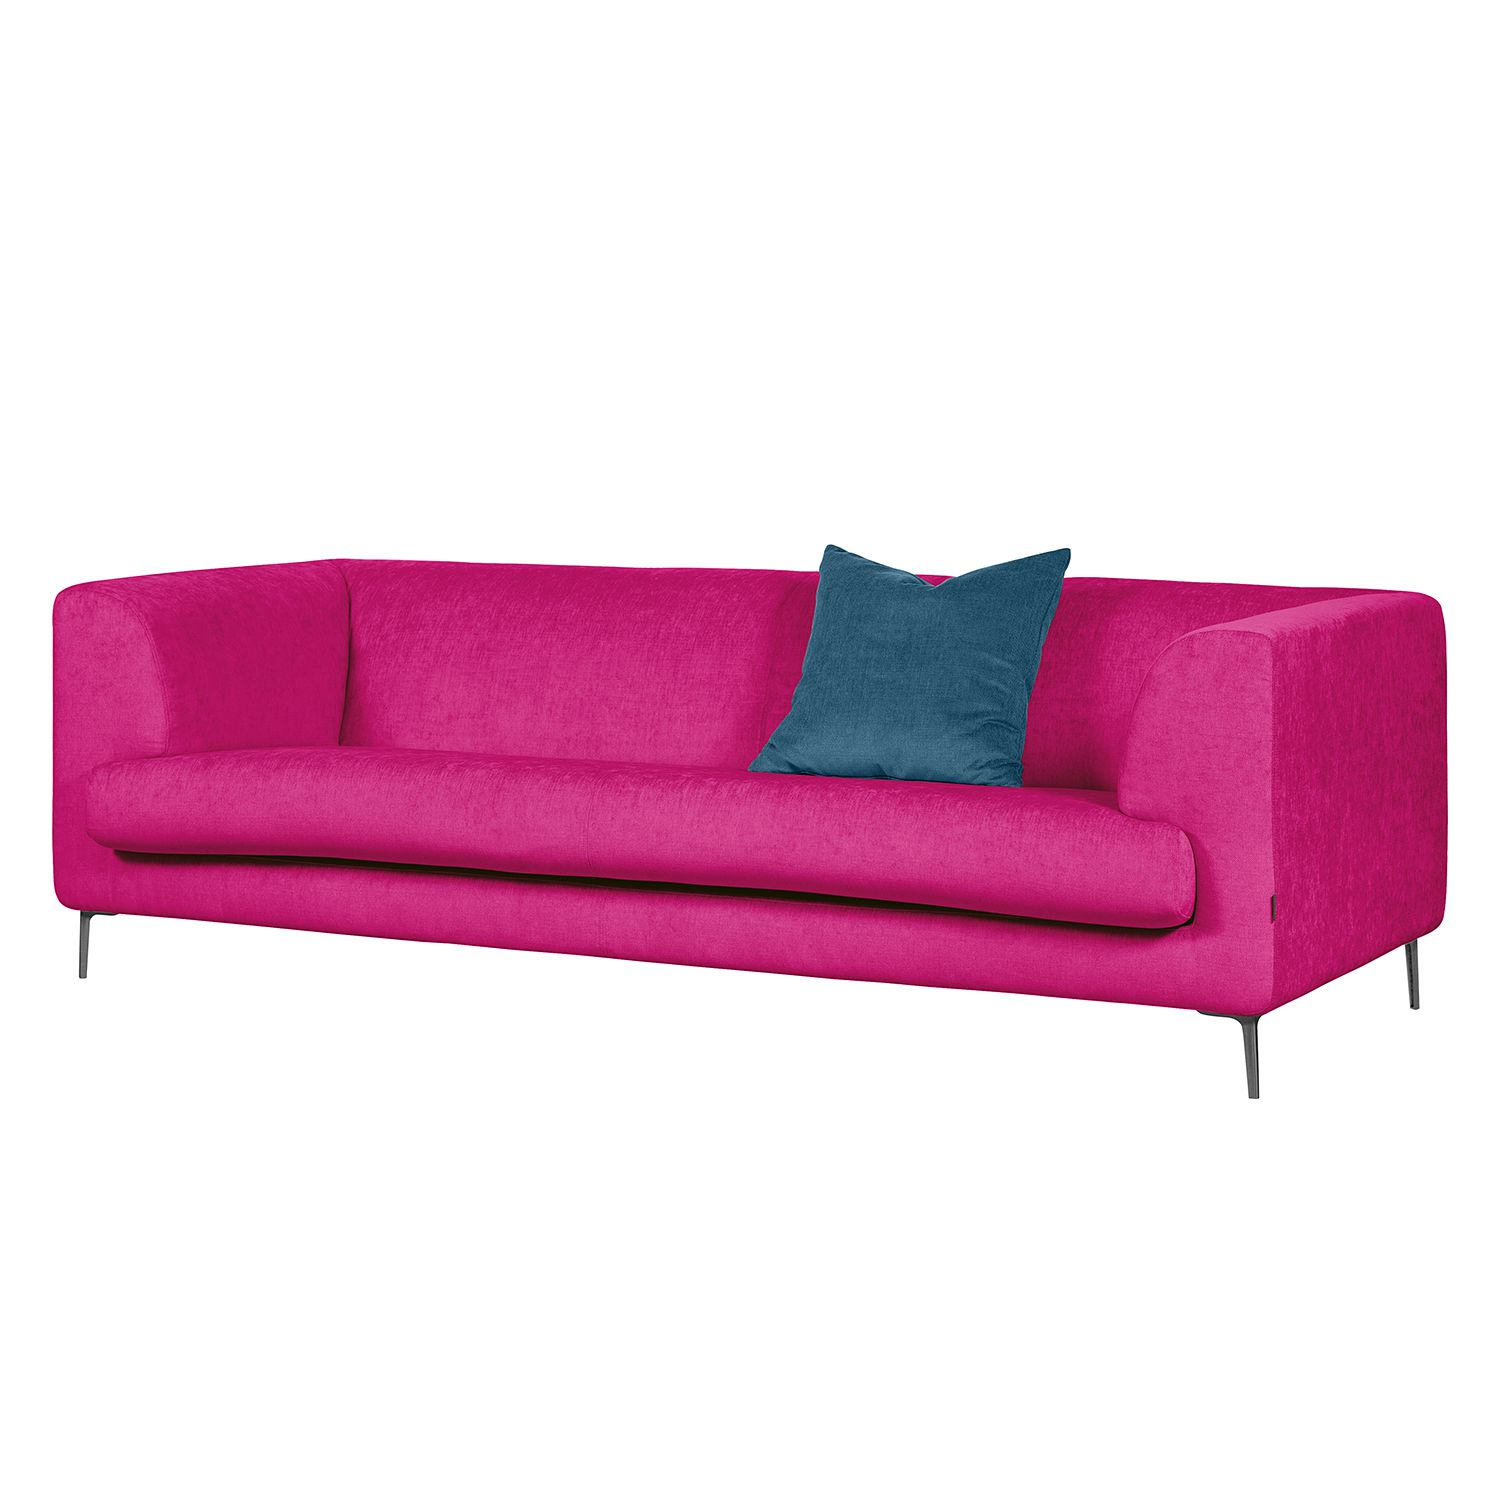 Sofa Sombret (3-Sitzer) - Webstoff - Pink, Says Who